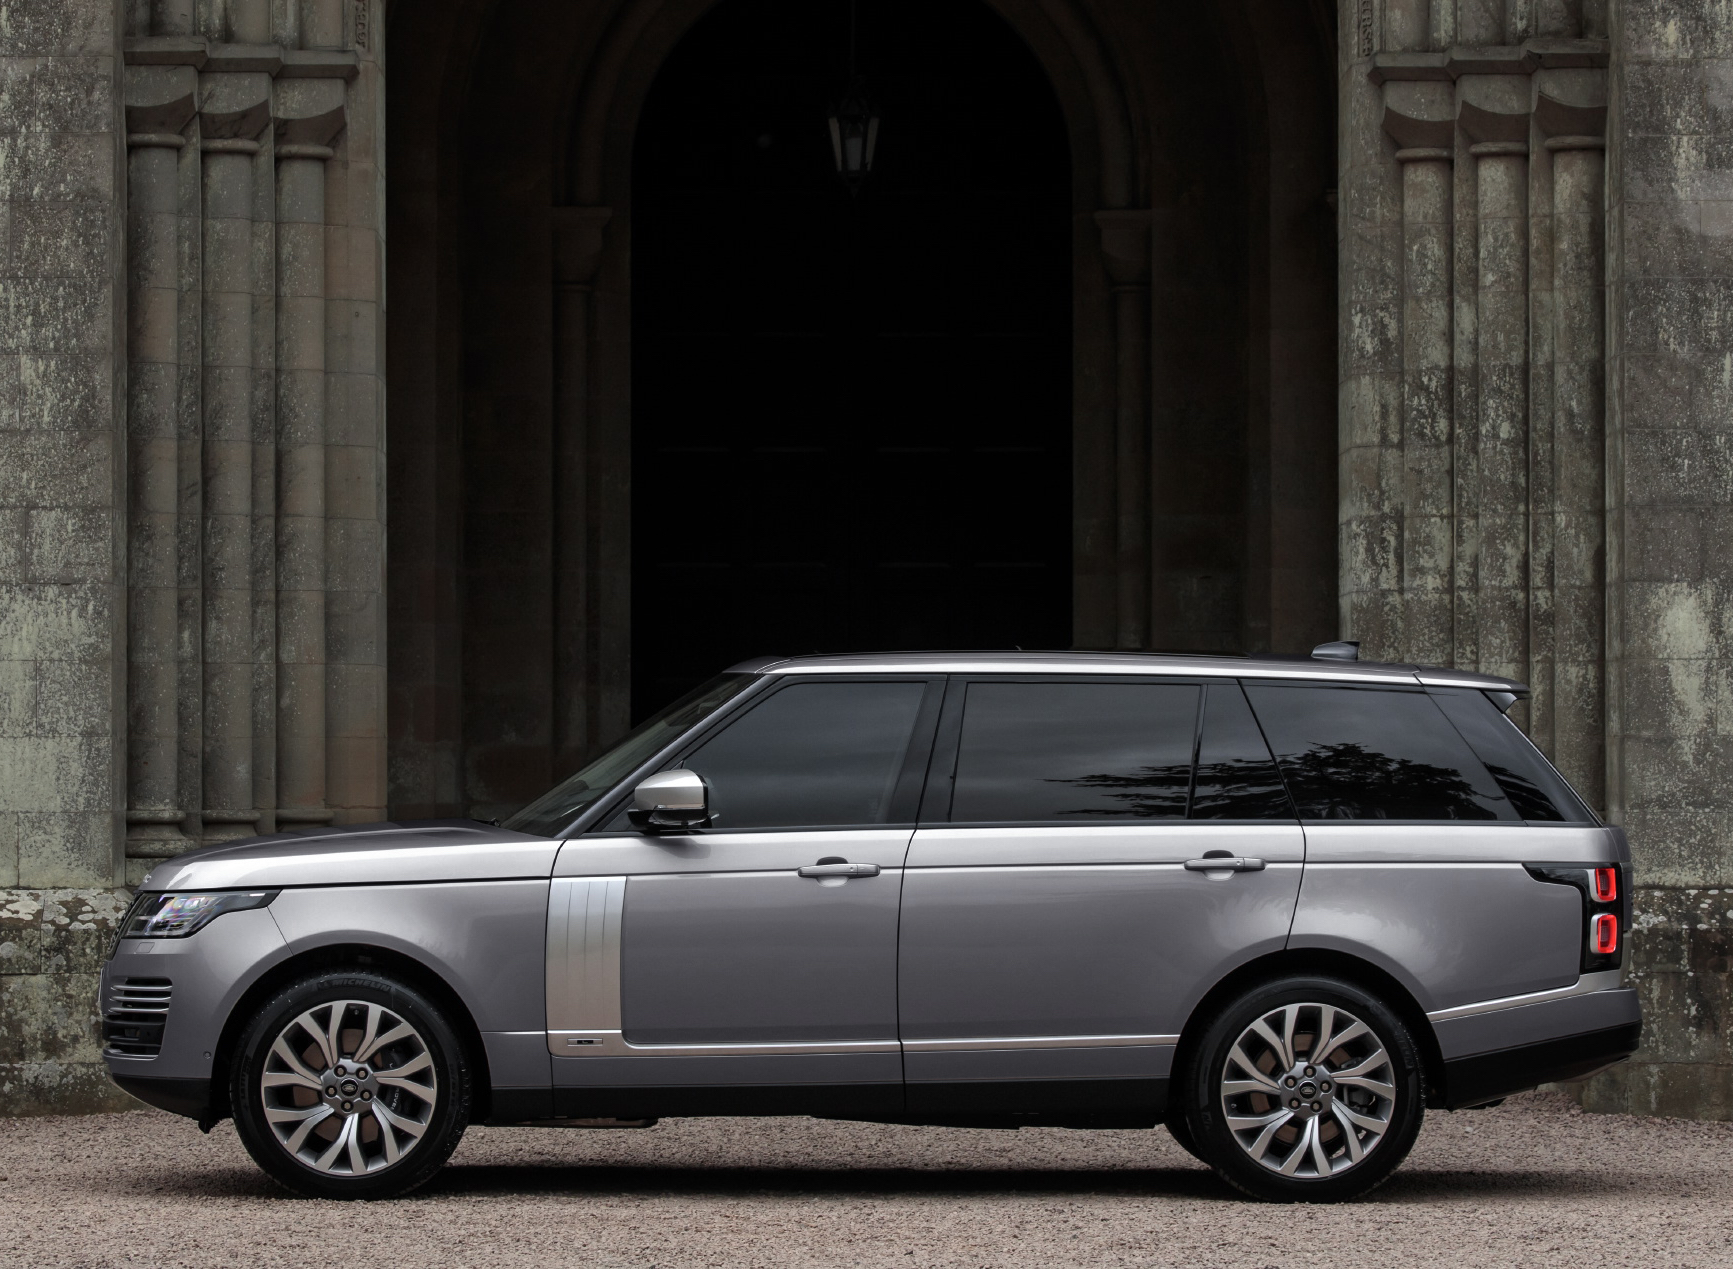 Range Rover parked outside stone building